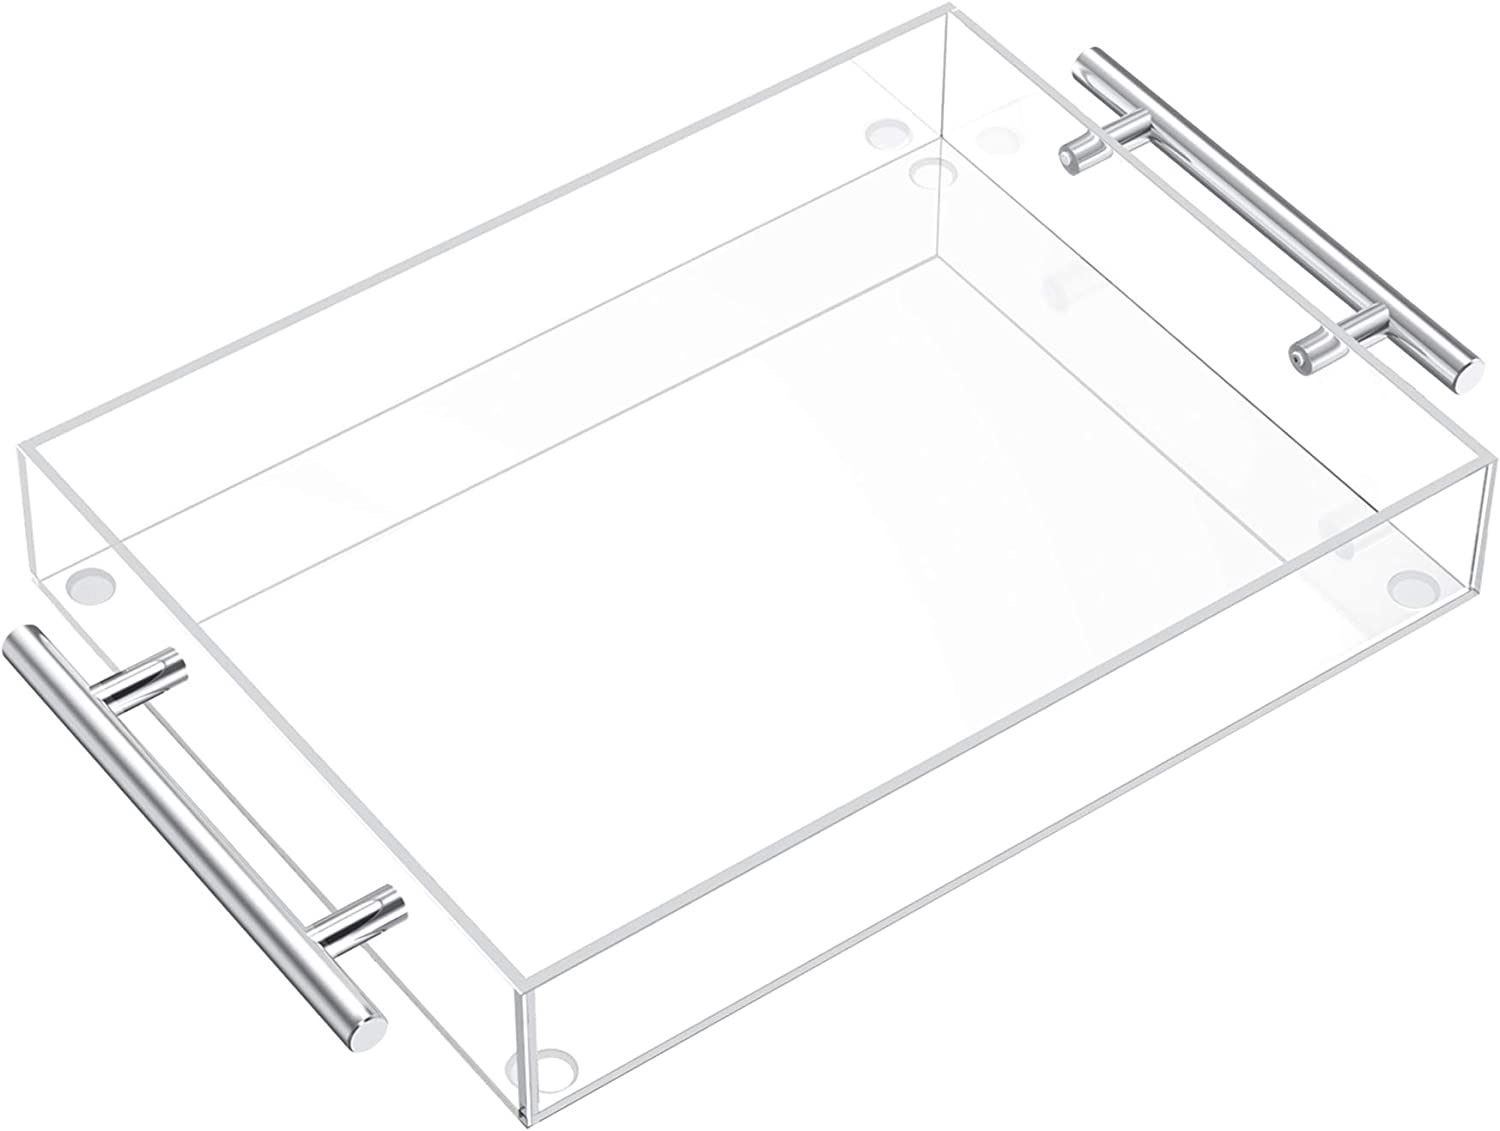 Clear Serving Tray 12x12 Acrylic Decorative Tray with Handles